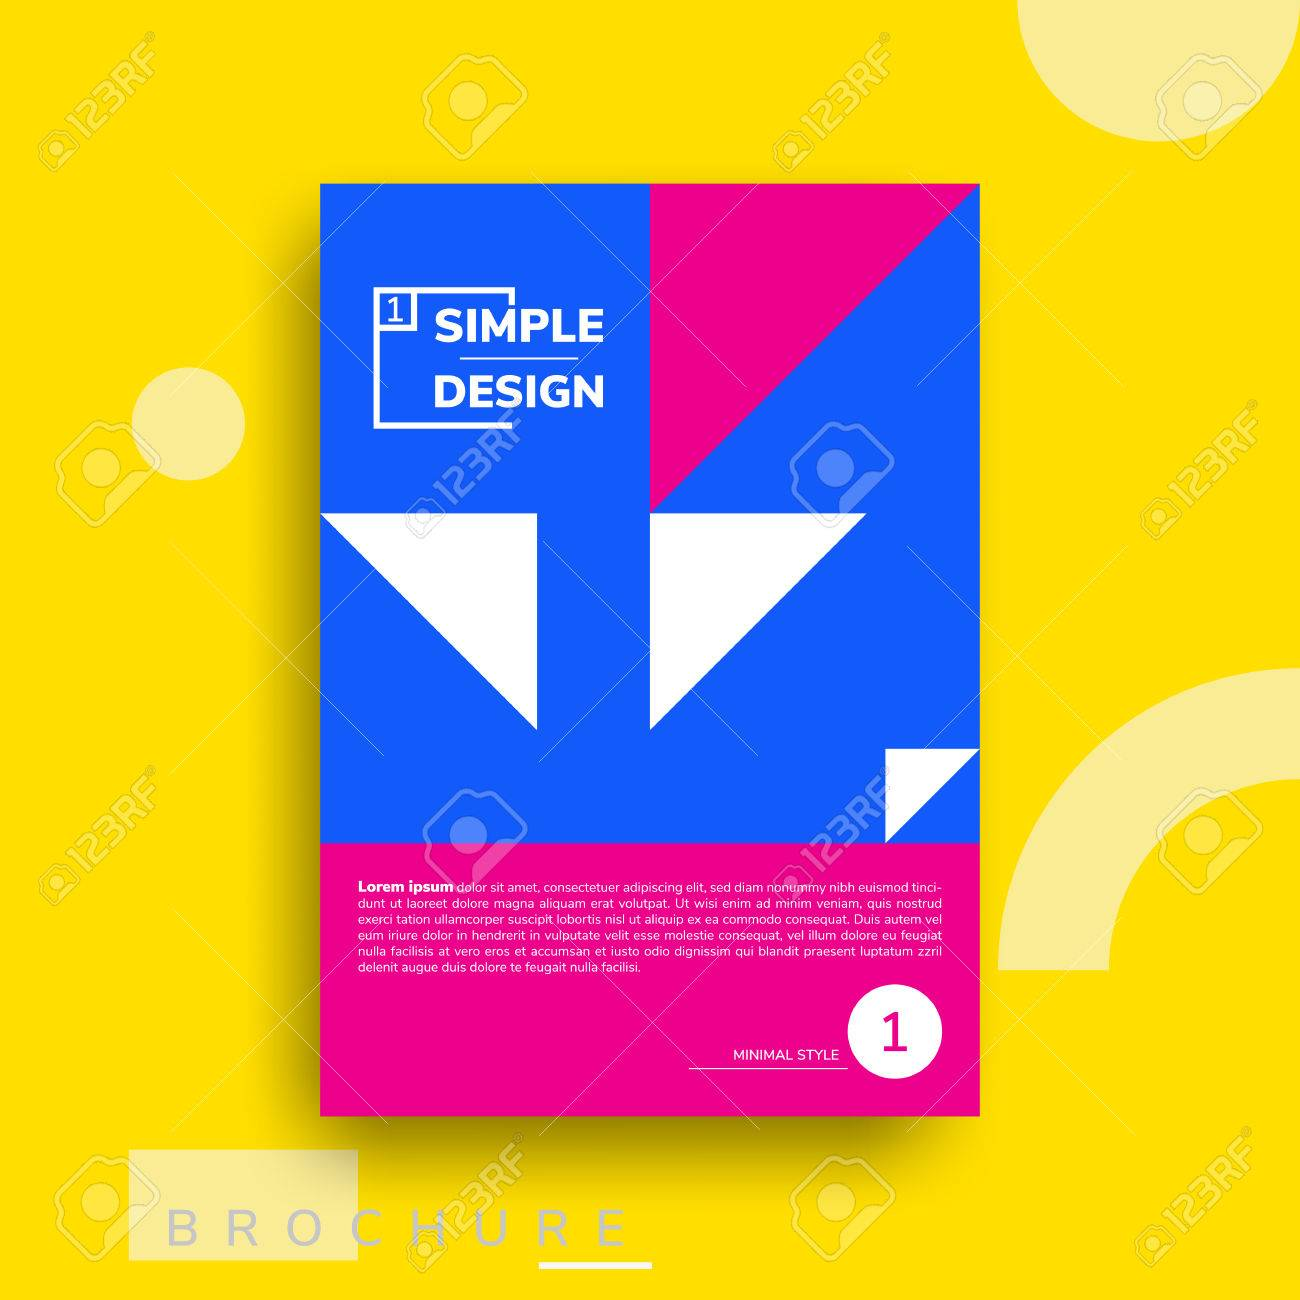 colorful flat geometric covers design vector poster template